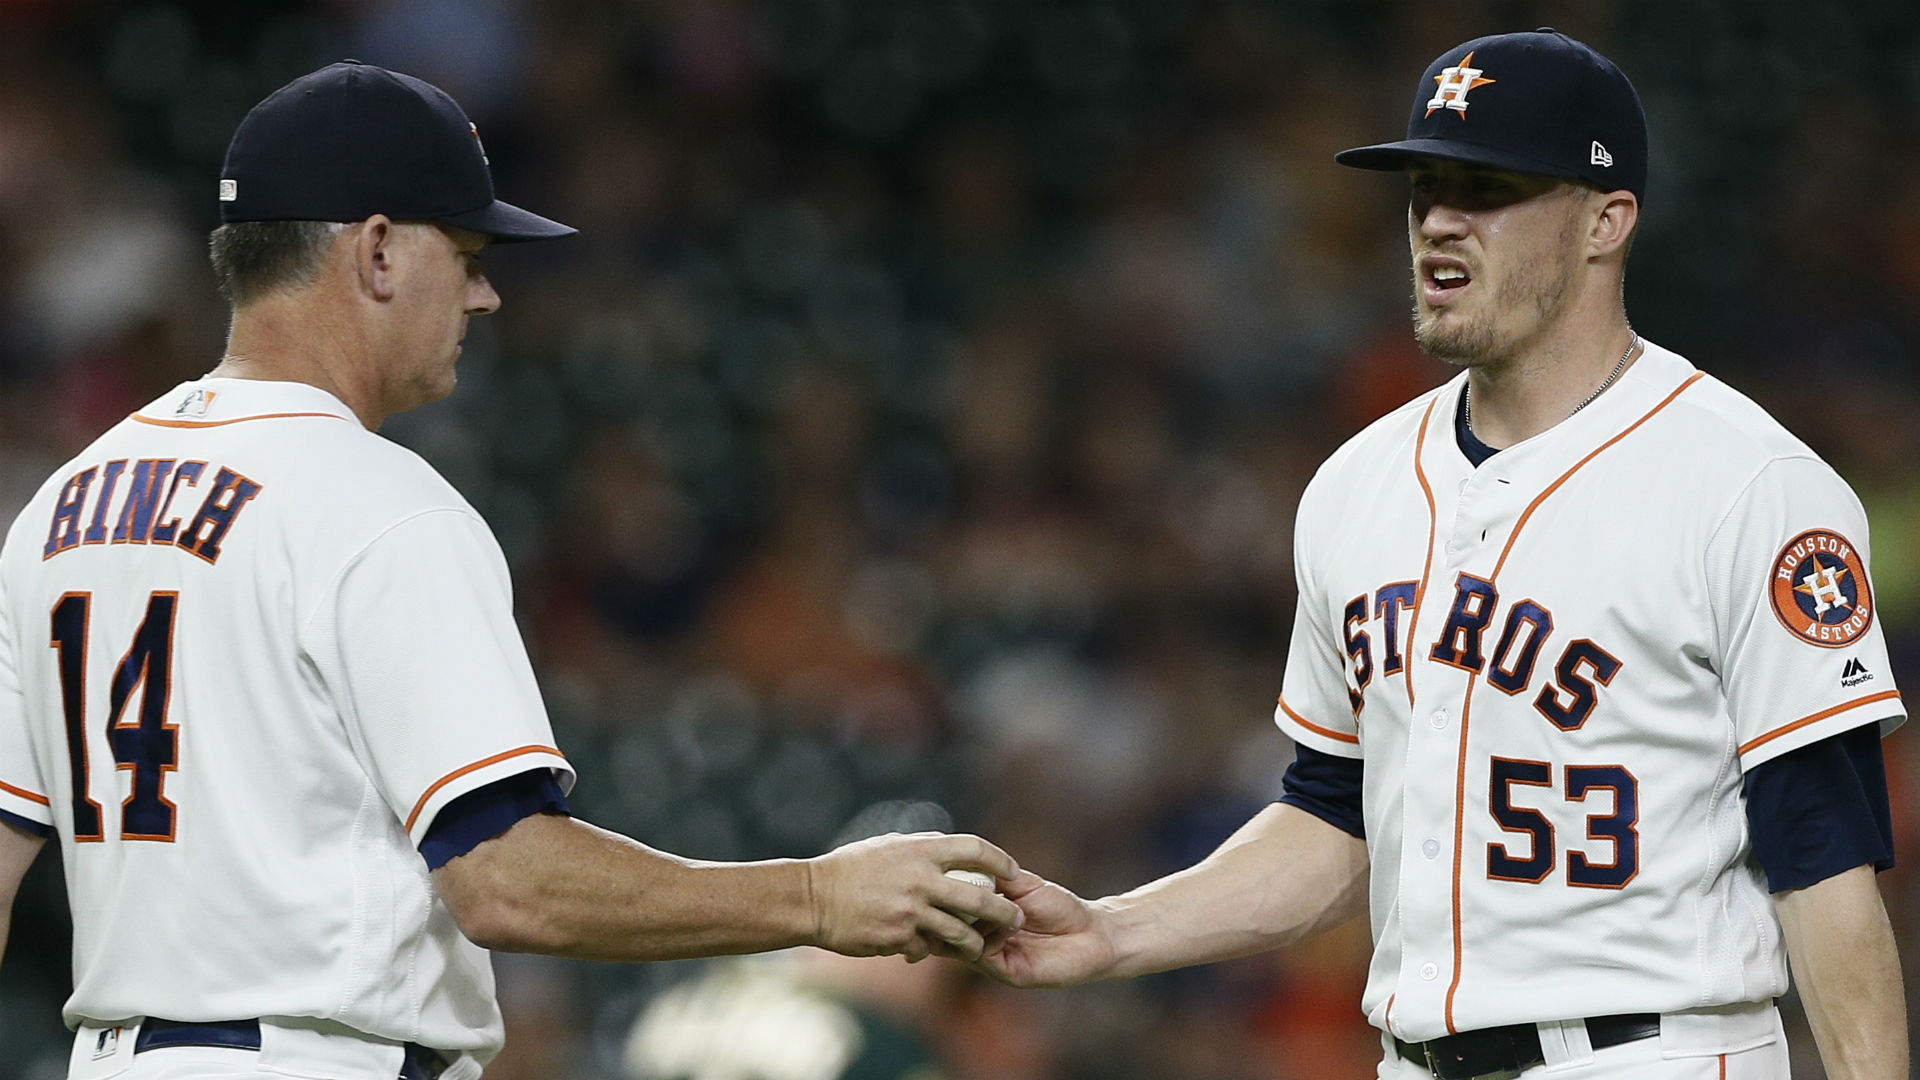 Astros demote Ken Giles to Triple-A a day after apparent tiff with manager A.J. Hinch